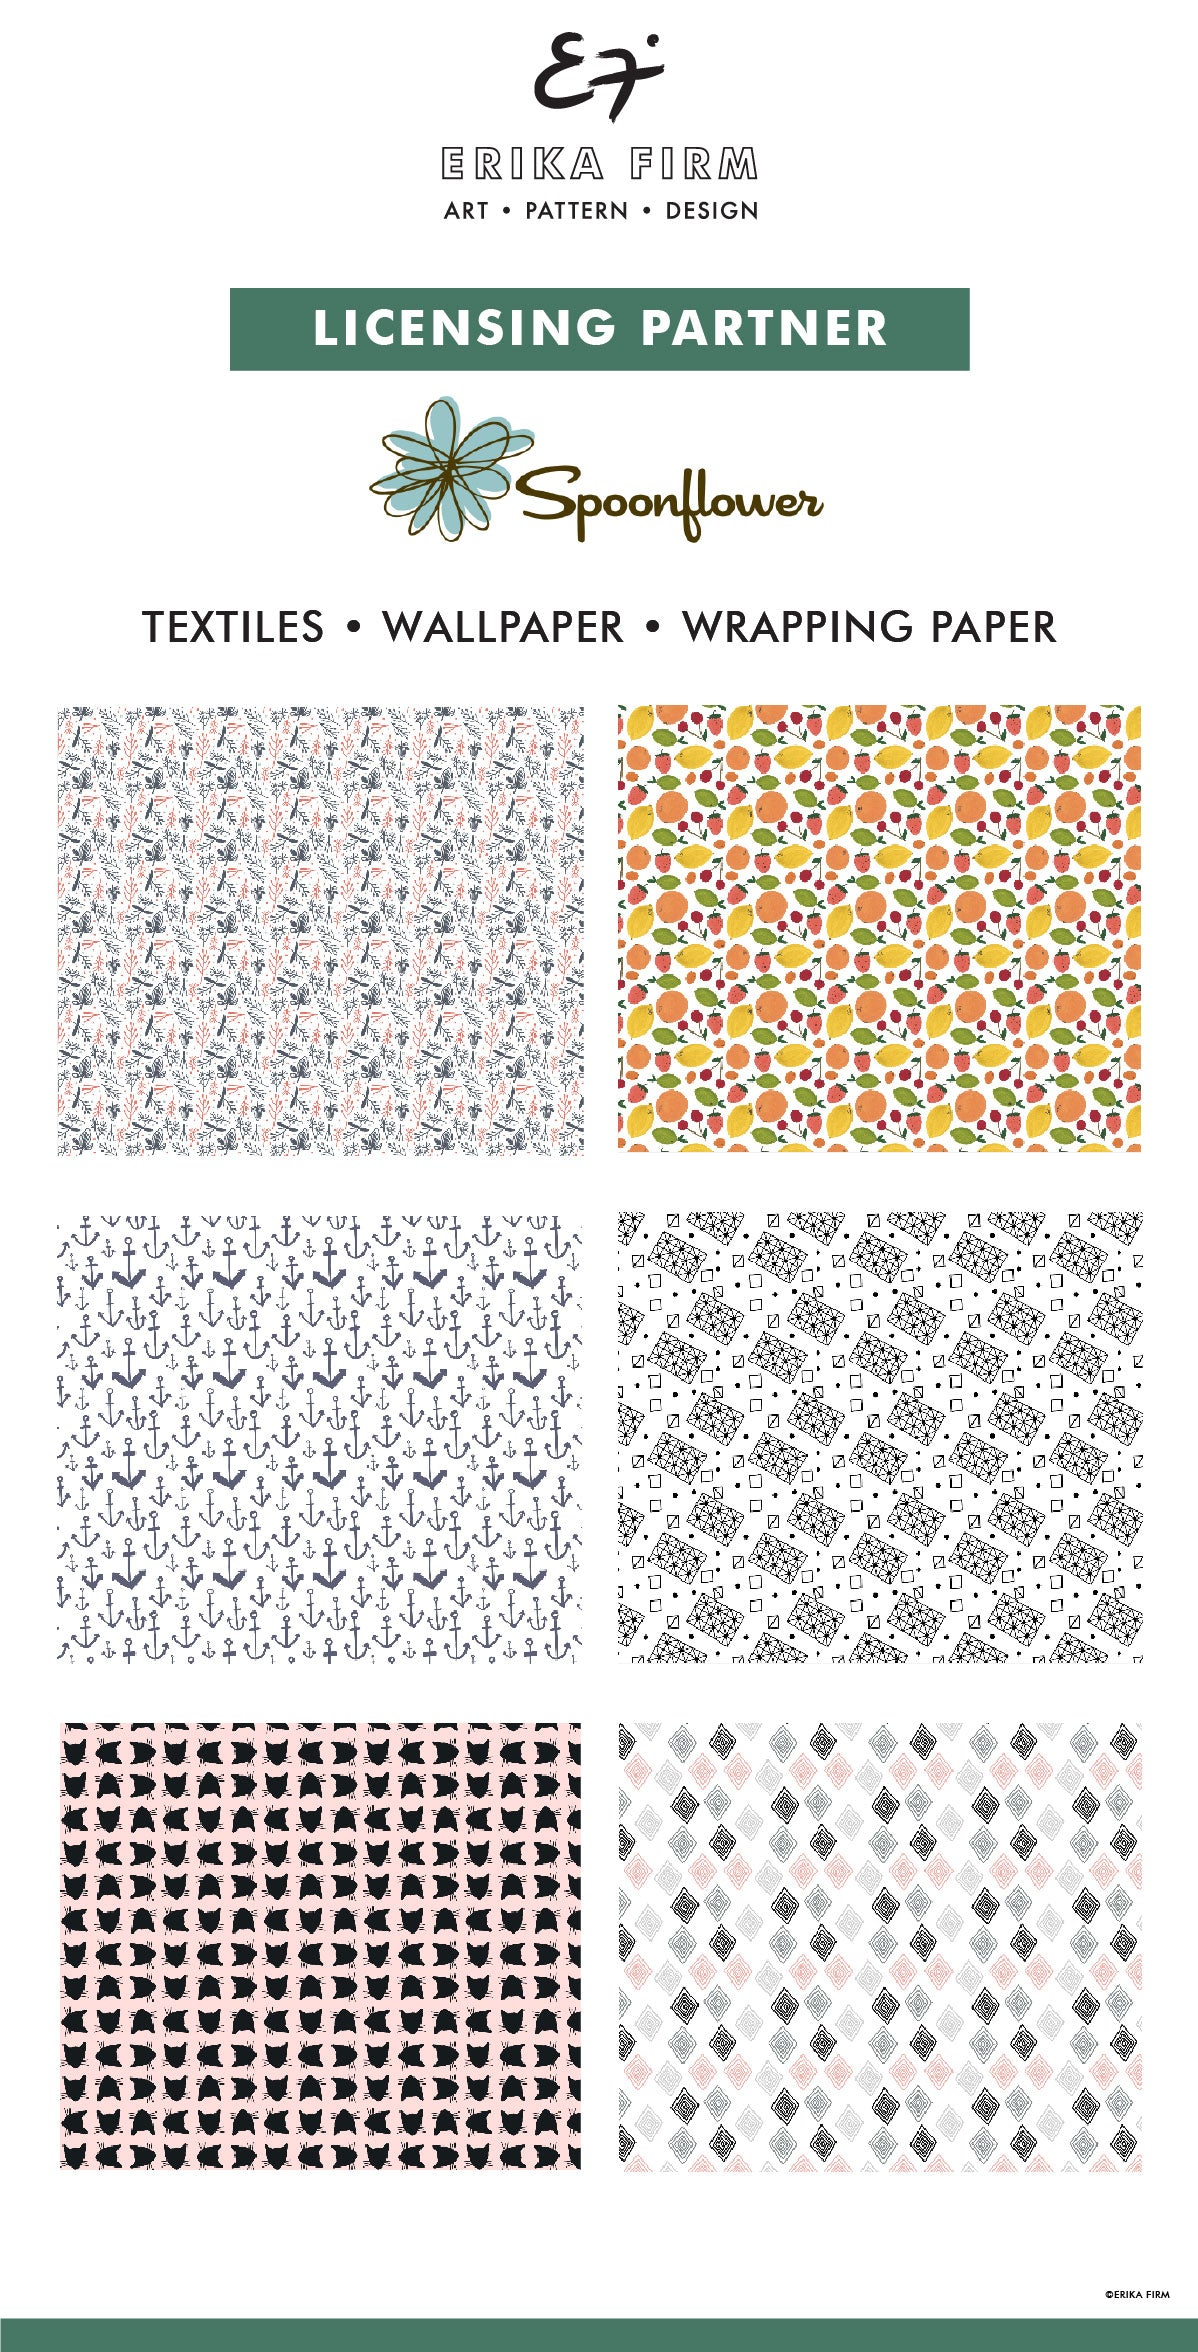 Erika Firm licenses art to Spoonflower for wallpaper and wrapping paper